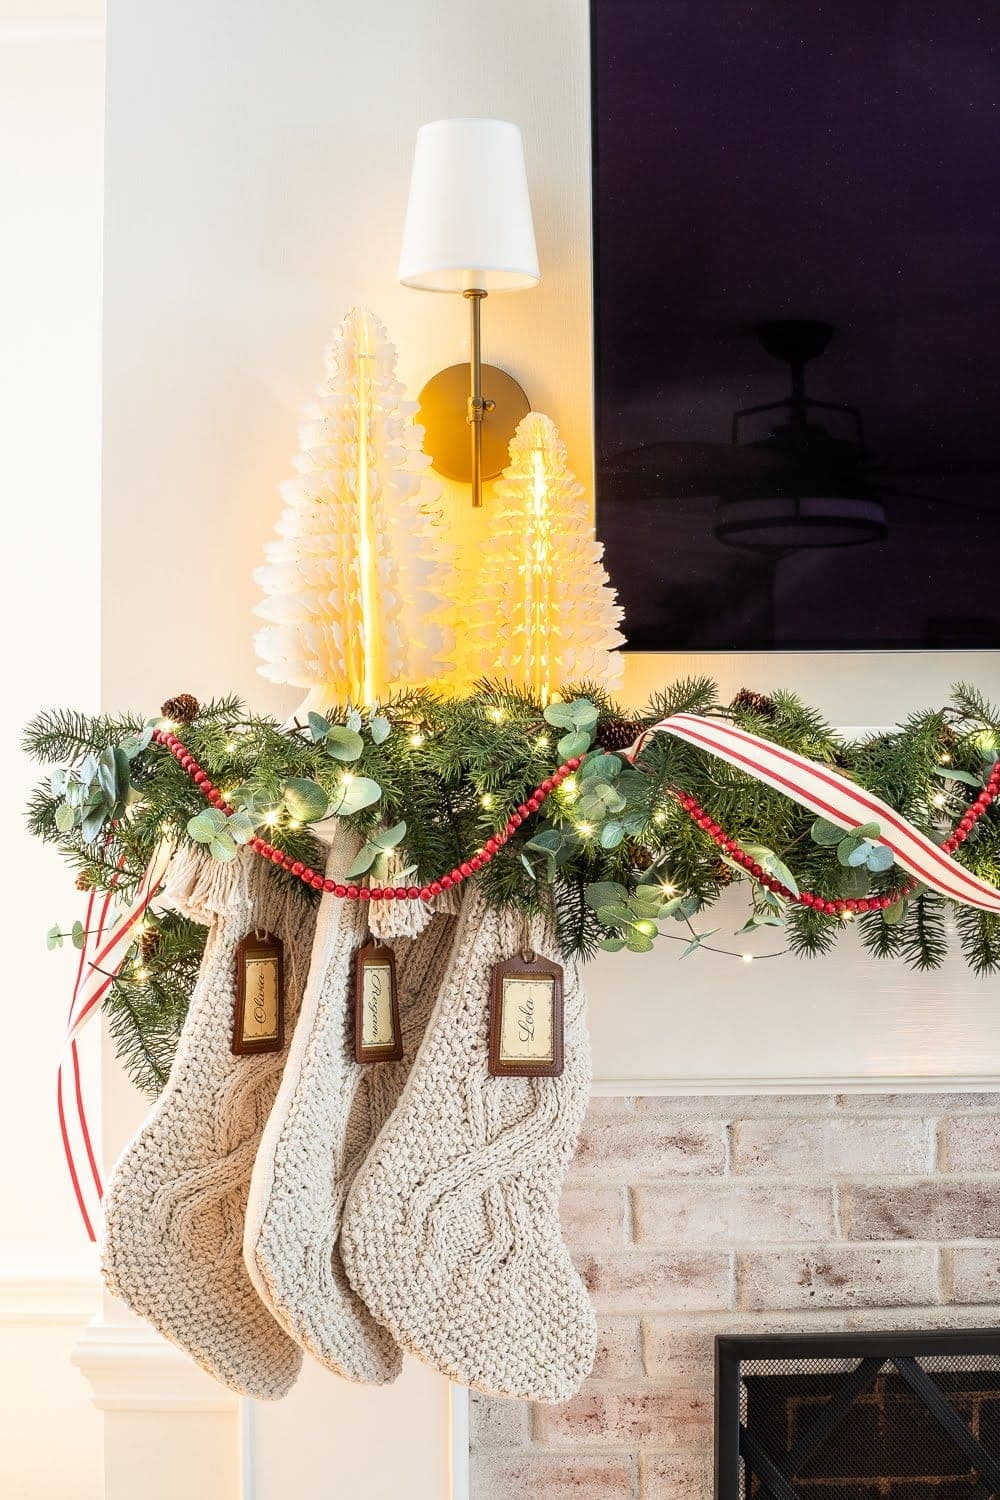 Swedish Christmas with paper tree figurines, chunky knit stockings, abundant greenery, fairy lights, and pops of red